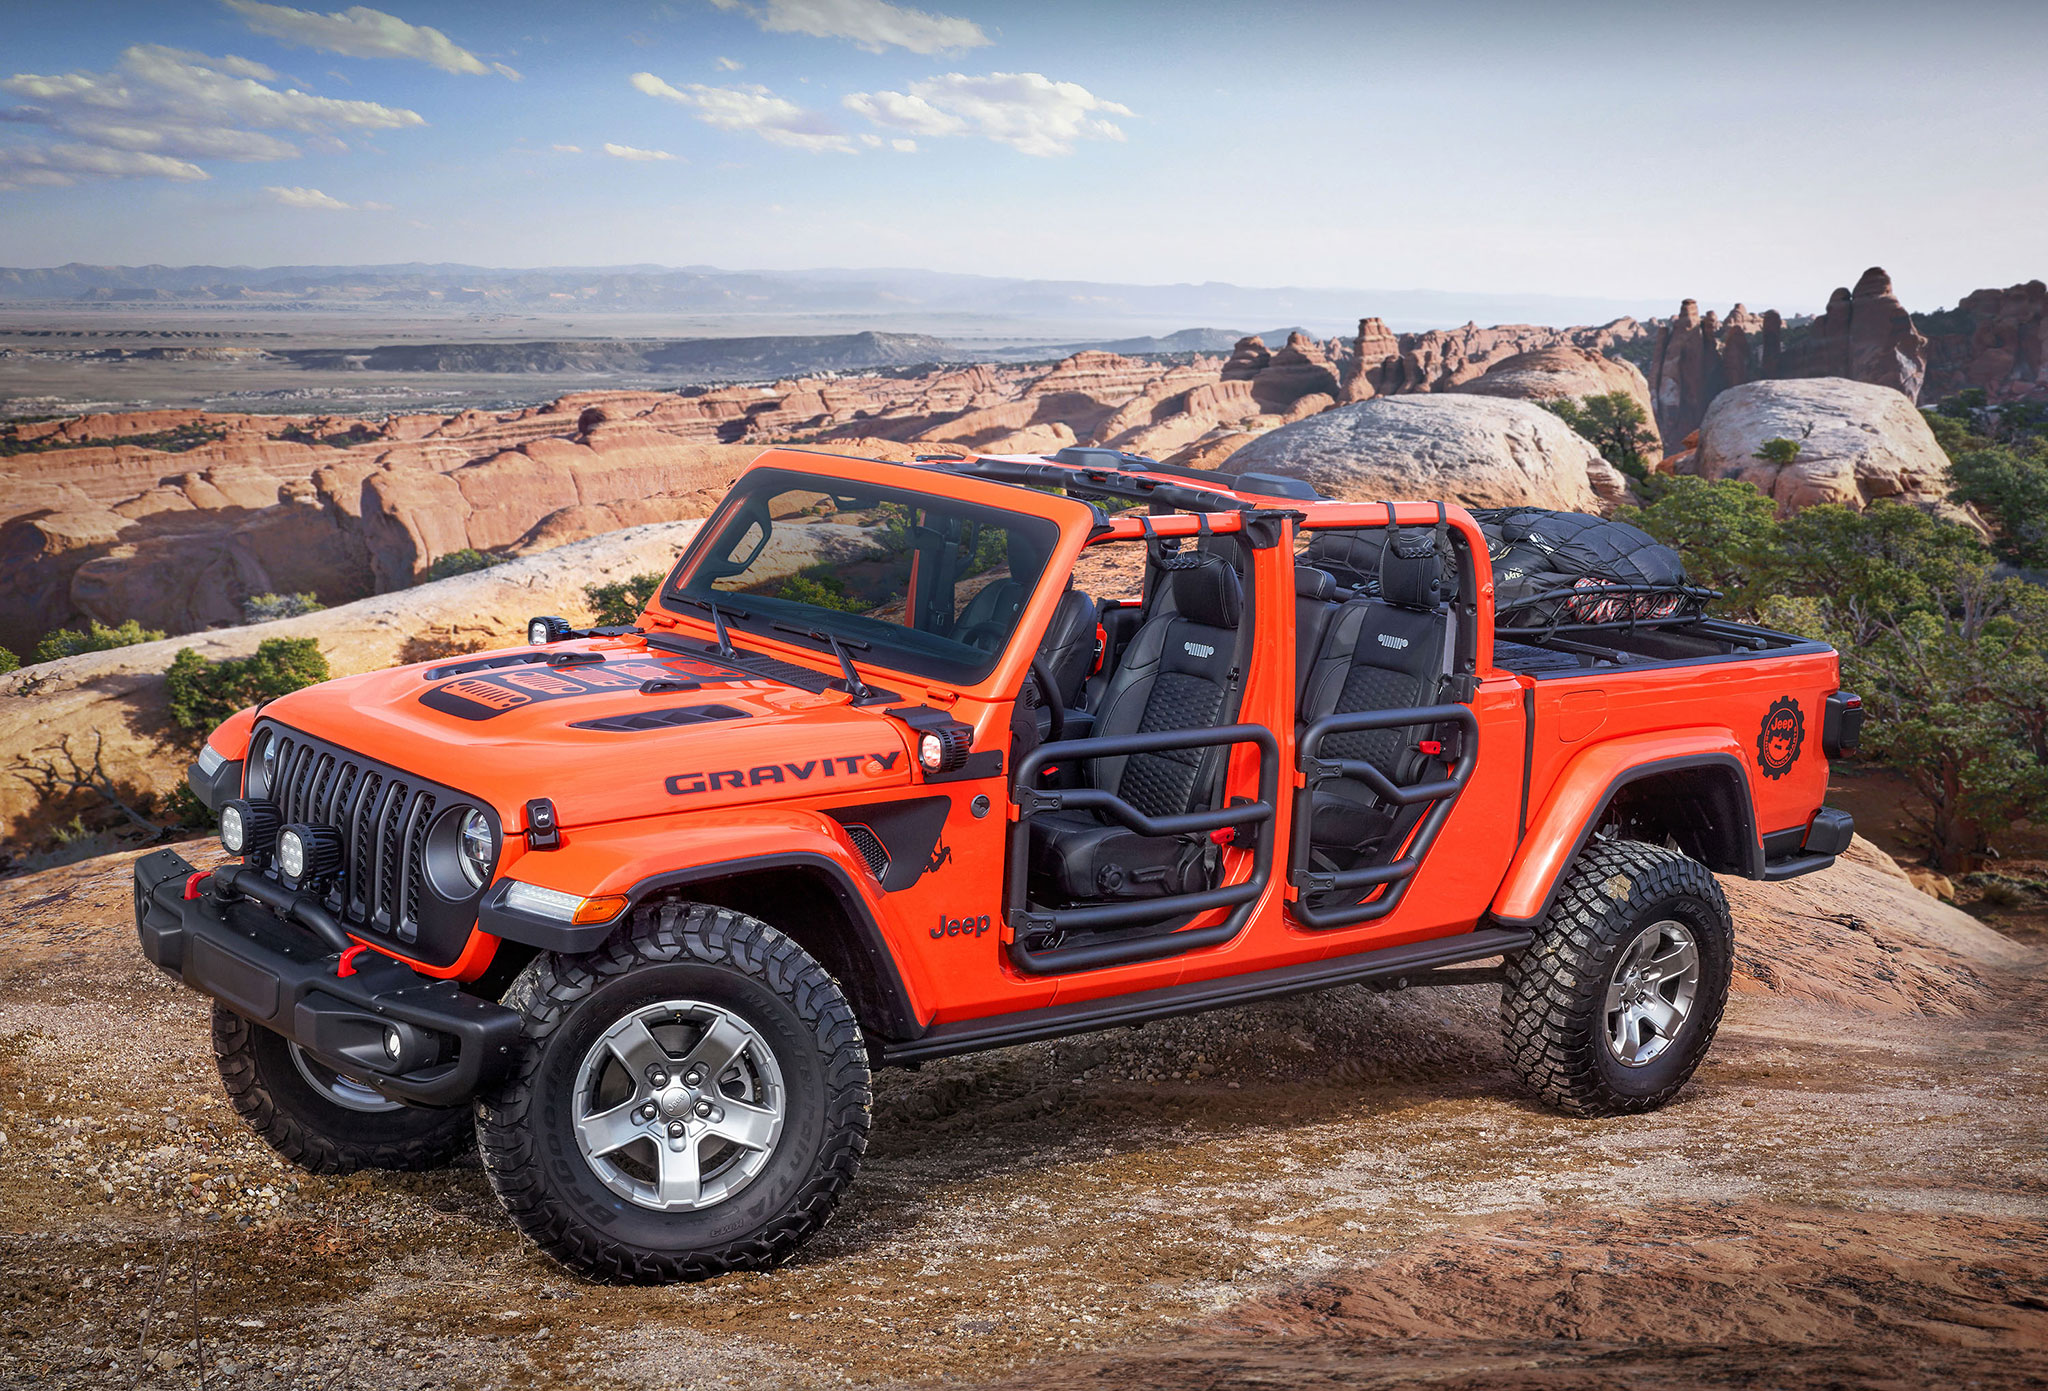 2019 Jeep Gladiator Gravity et sa peinture Punk'N Mettalic Orange - Moab Easter Jeep Safari.